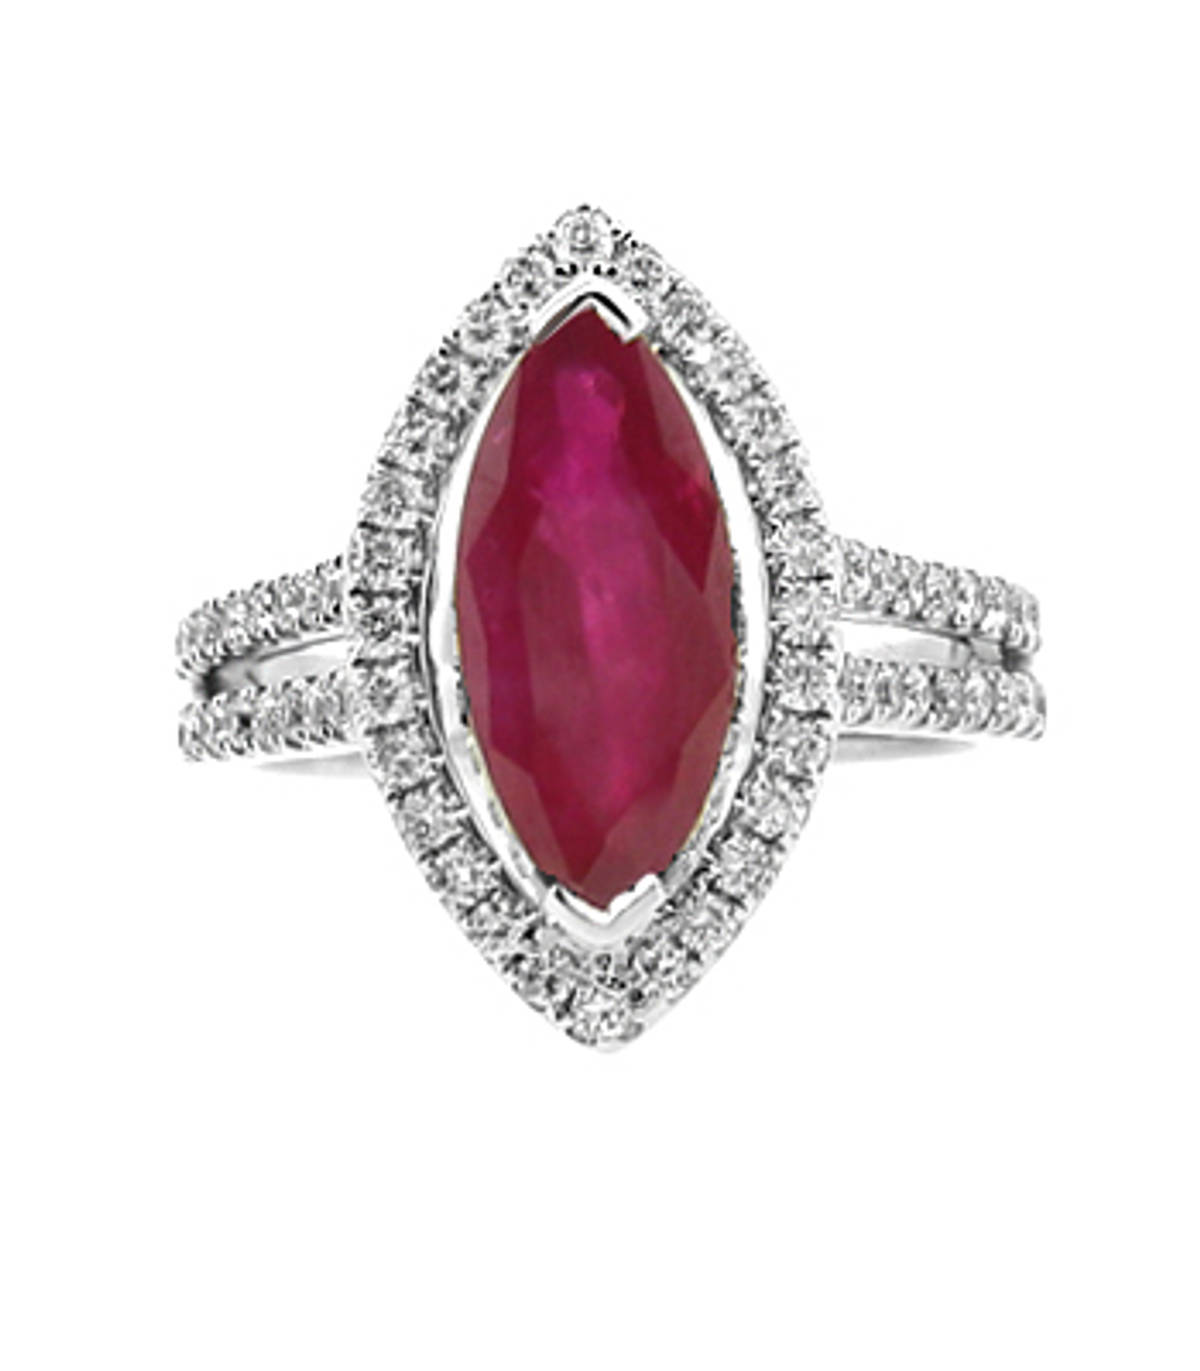 Marquise ruby(one) 1.98ct and 0.80ct(62 diamonds) diamond cluster ring in 18 carat white gold